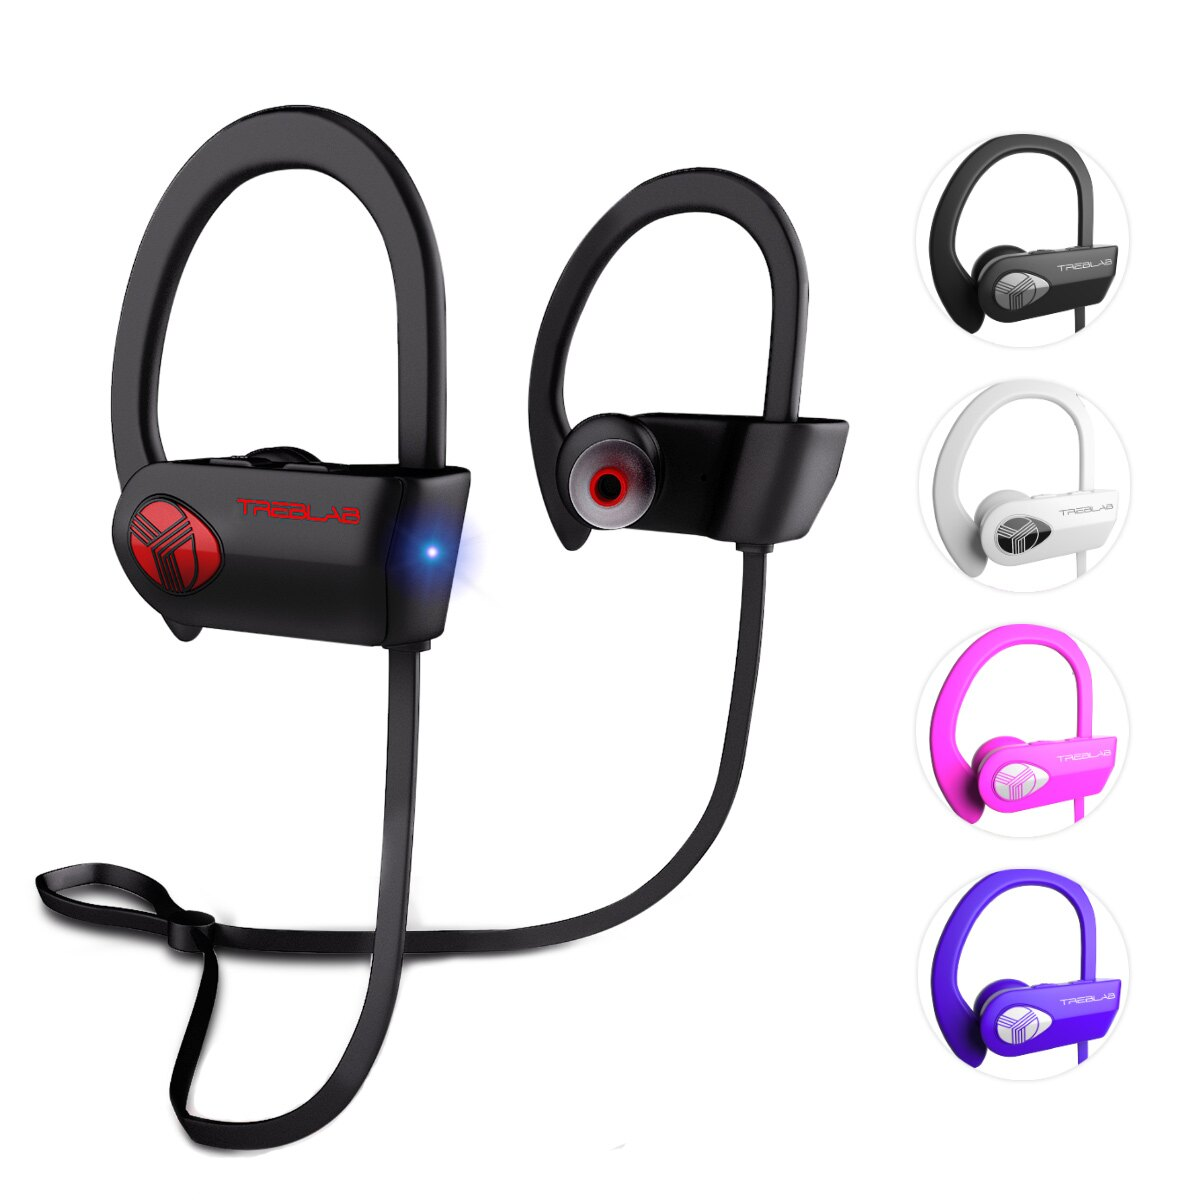 1b03698320c TREBLAB XR500 Bluetooth Headphones, Best Wireless Earbuds For Sports,  Running, Gym Workout.